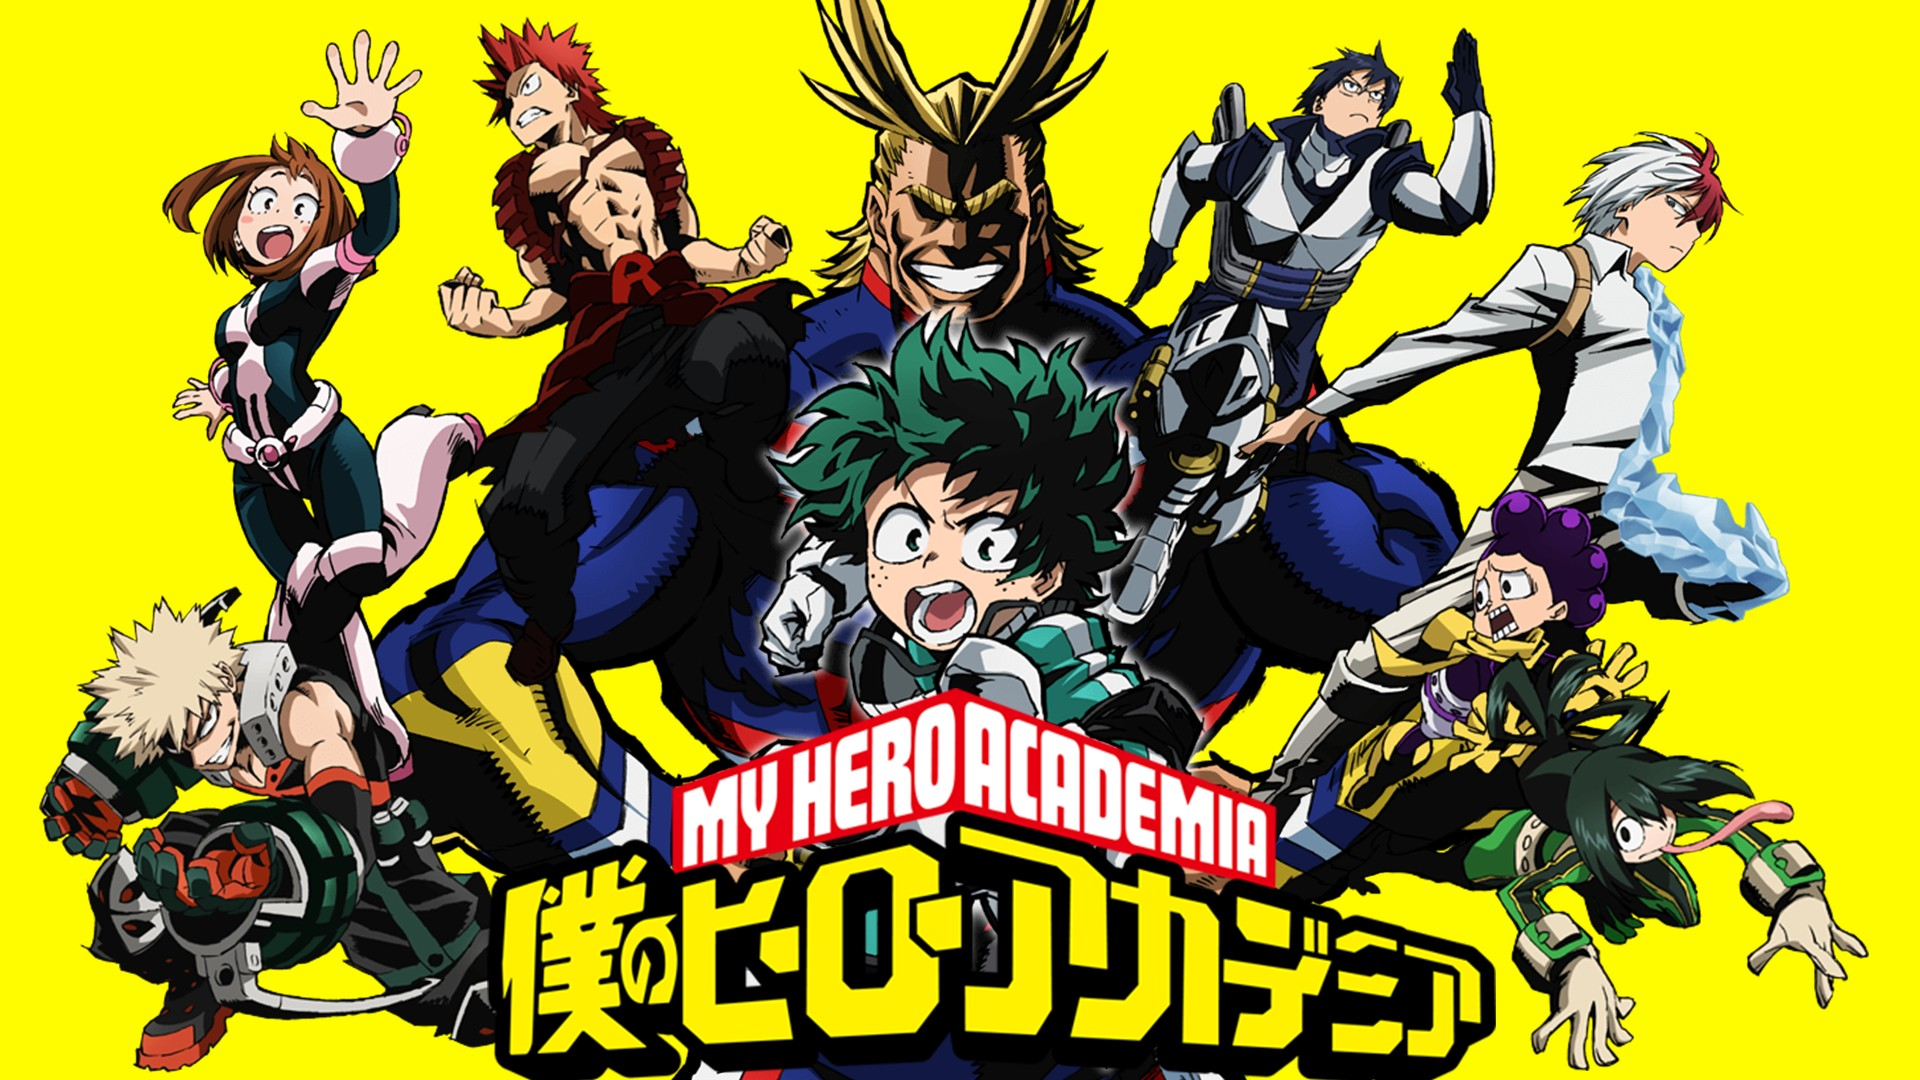 My Hero Academia Wallpaper Download Free Amazing Backgrounds